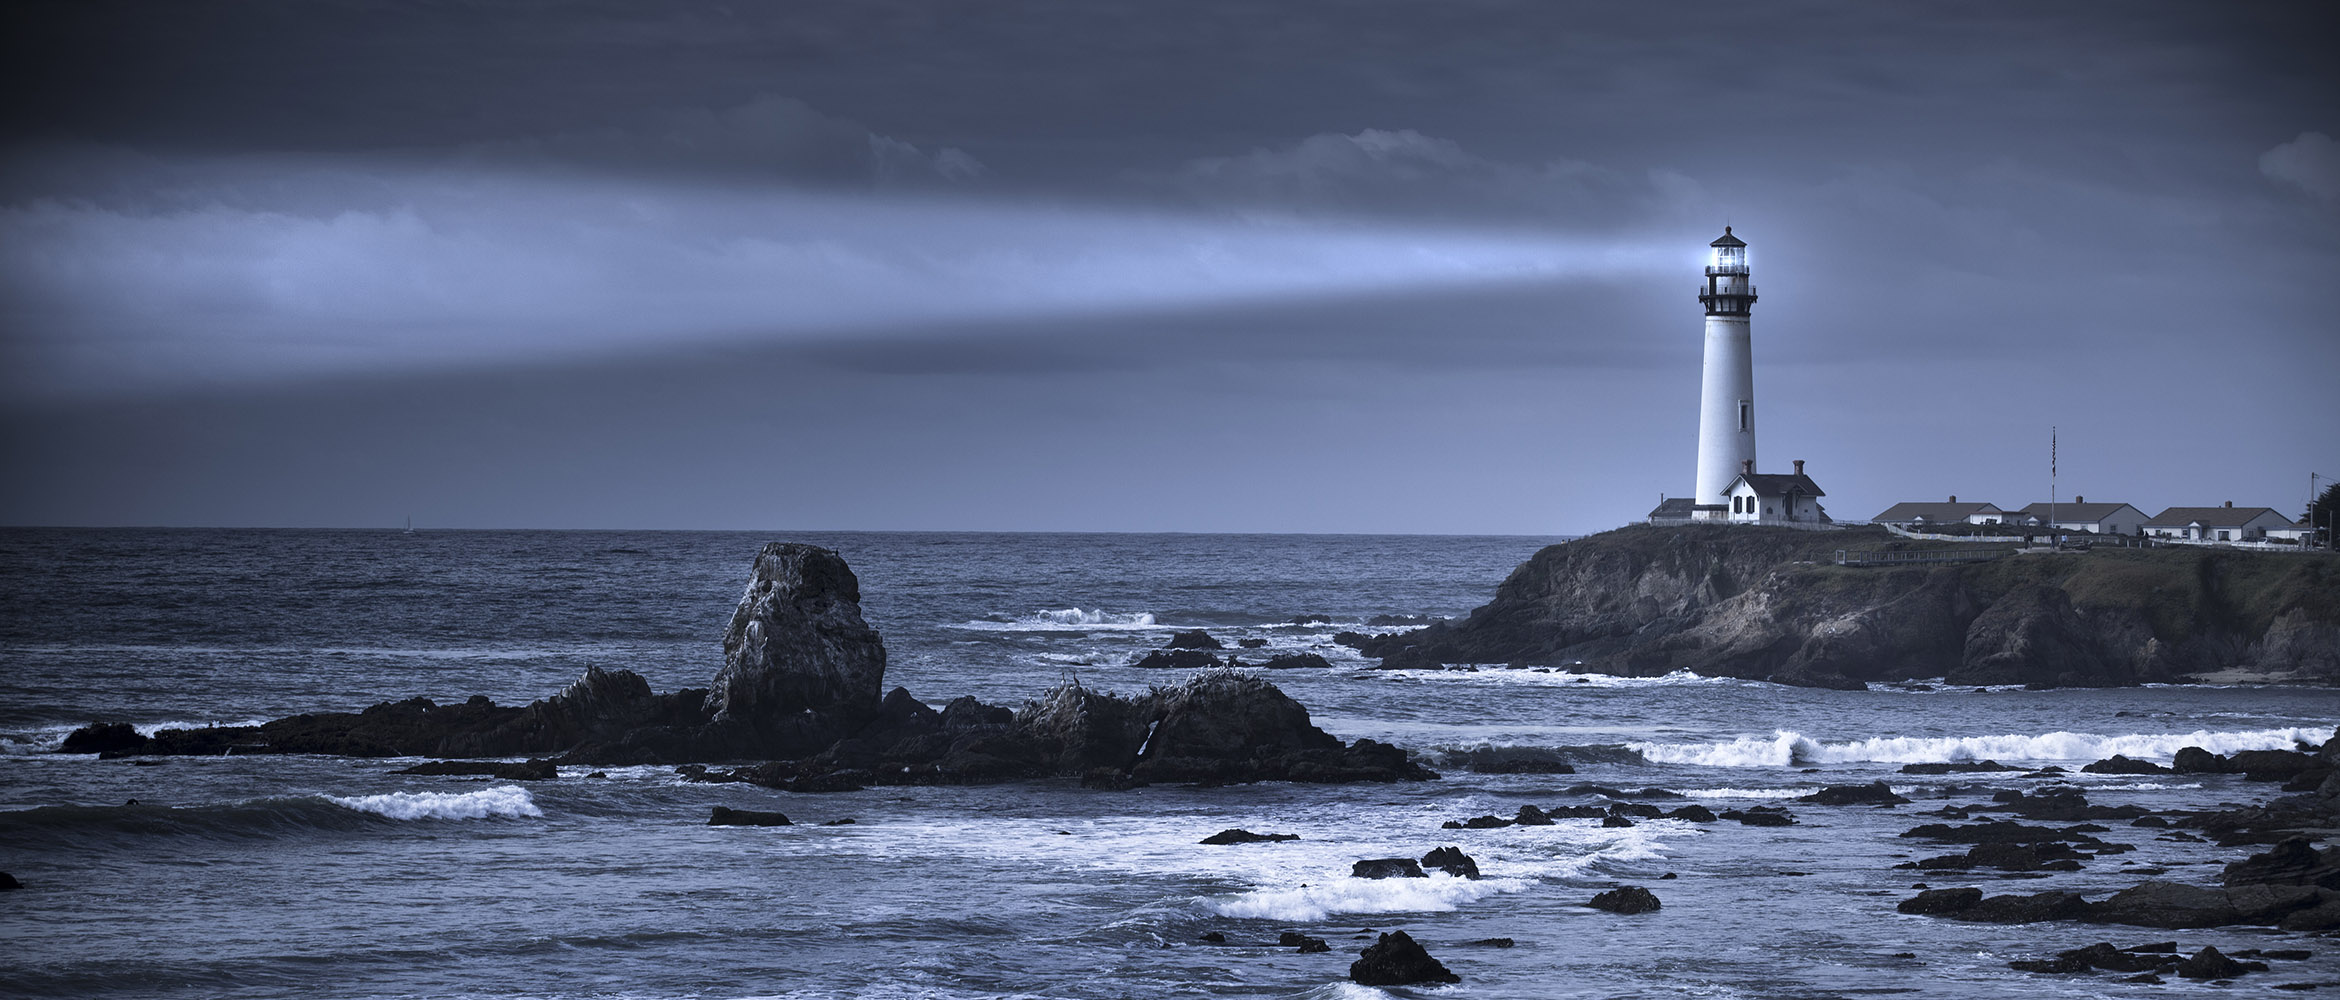 lighthouse on a rocky shore shining light over the ocean as a metaphor for insurance claims and loss control services